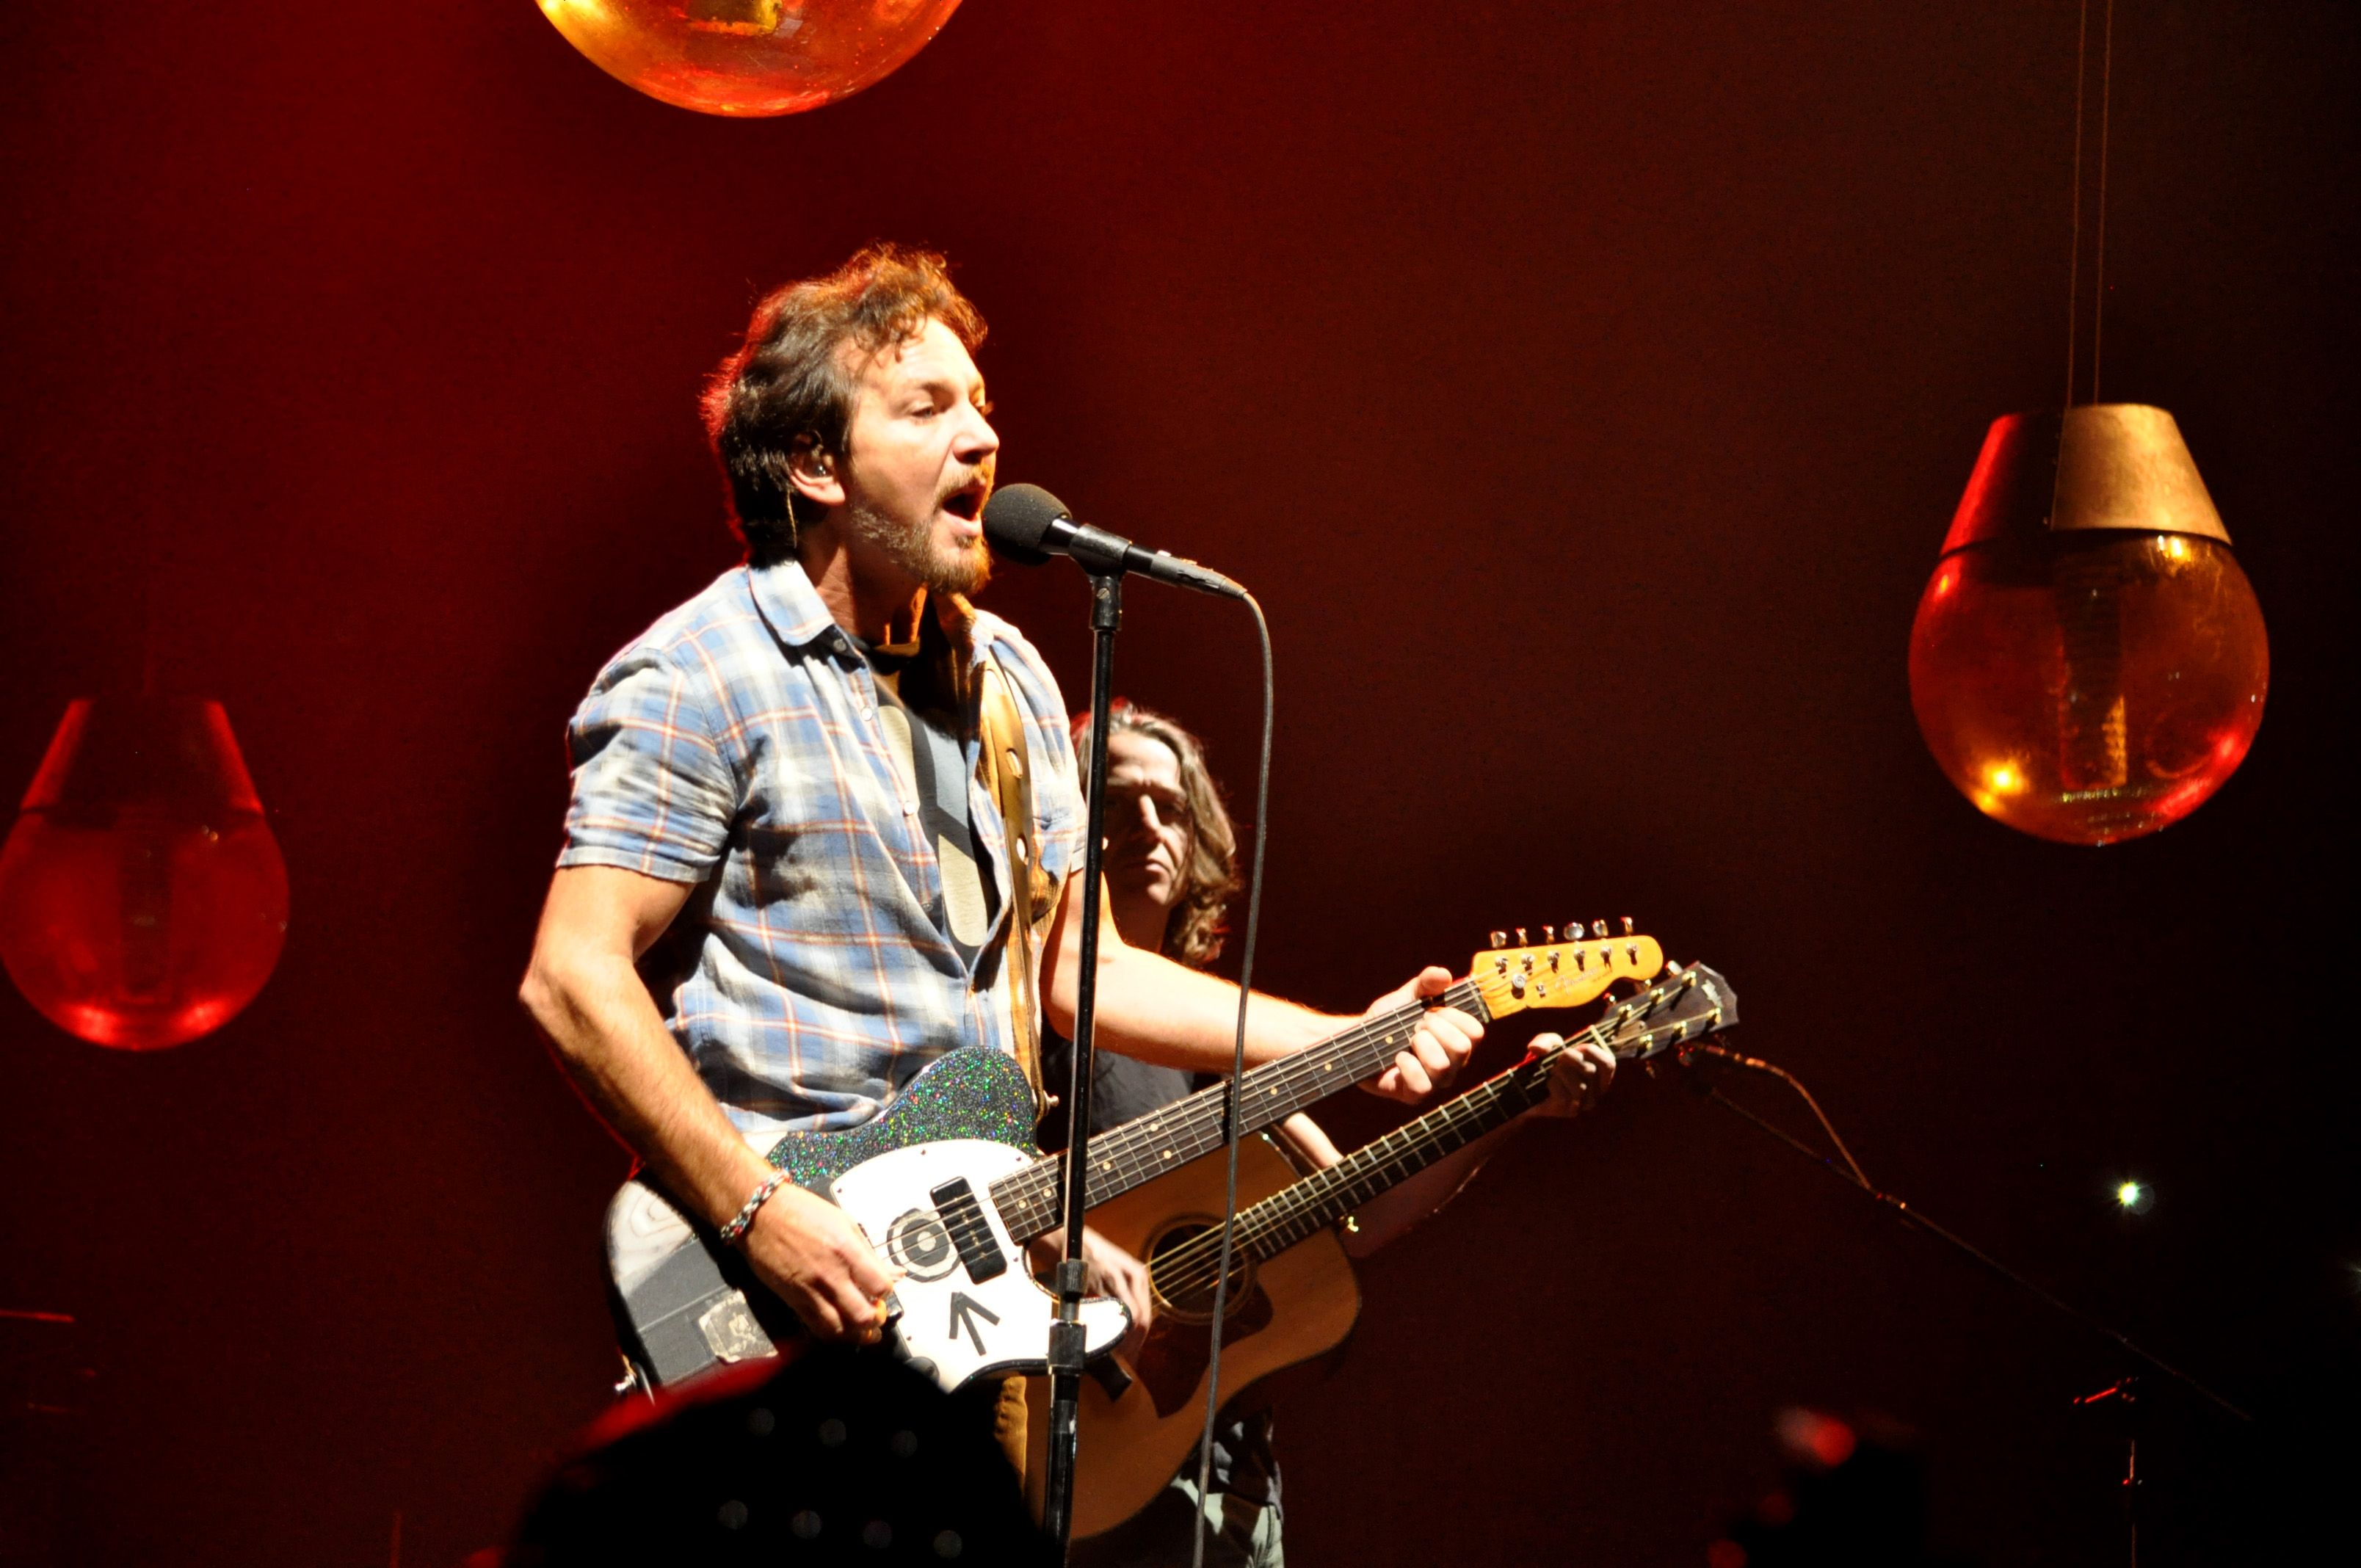 Ohana Festival Secures Identical Lineup After Postponing 2020 Festival To 2021 In 2020 Pearl Jam Kings Of Leon The Pretenders